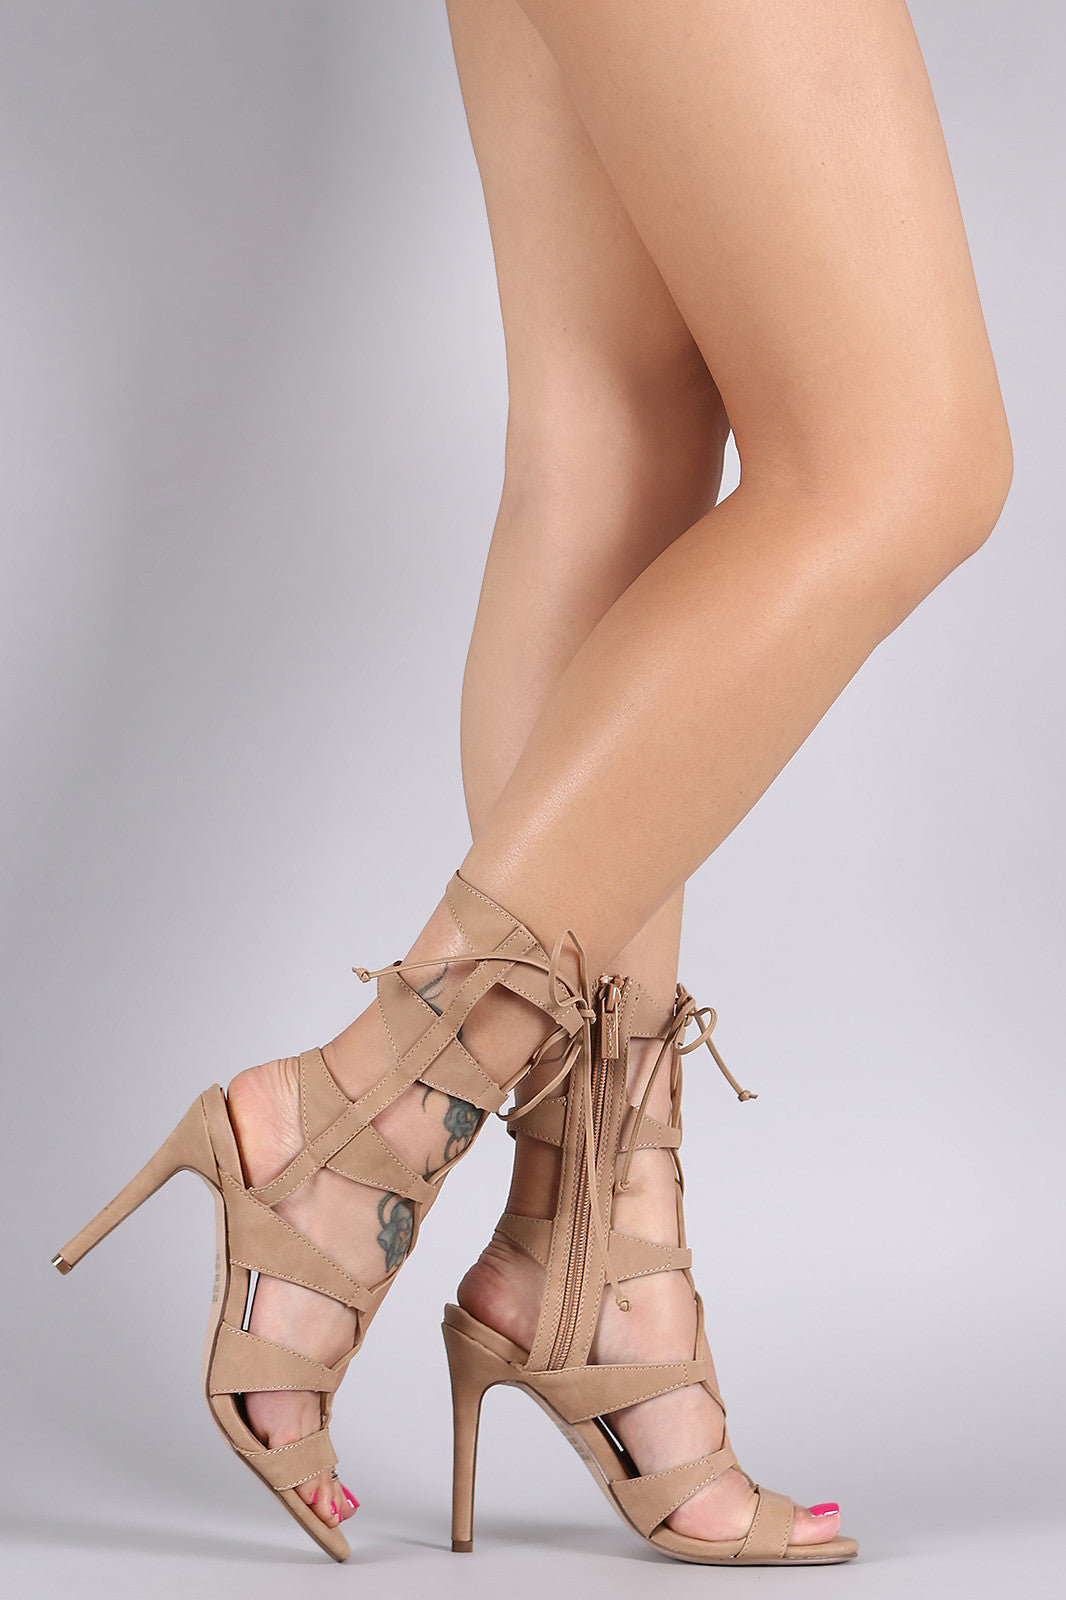 Breckelle Strappy Corset Lace Up Stiletto Heel - Thick 'N' Curvy Shop - 7